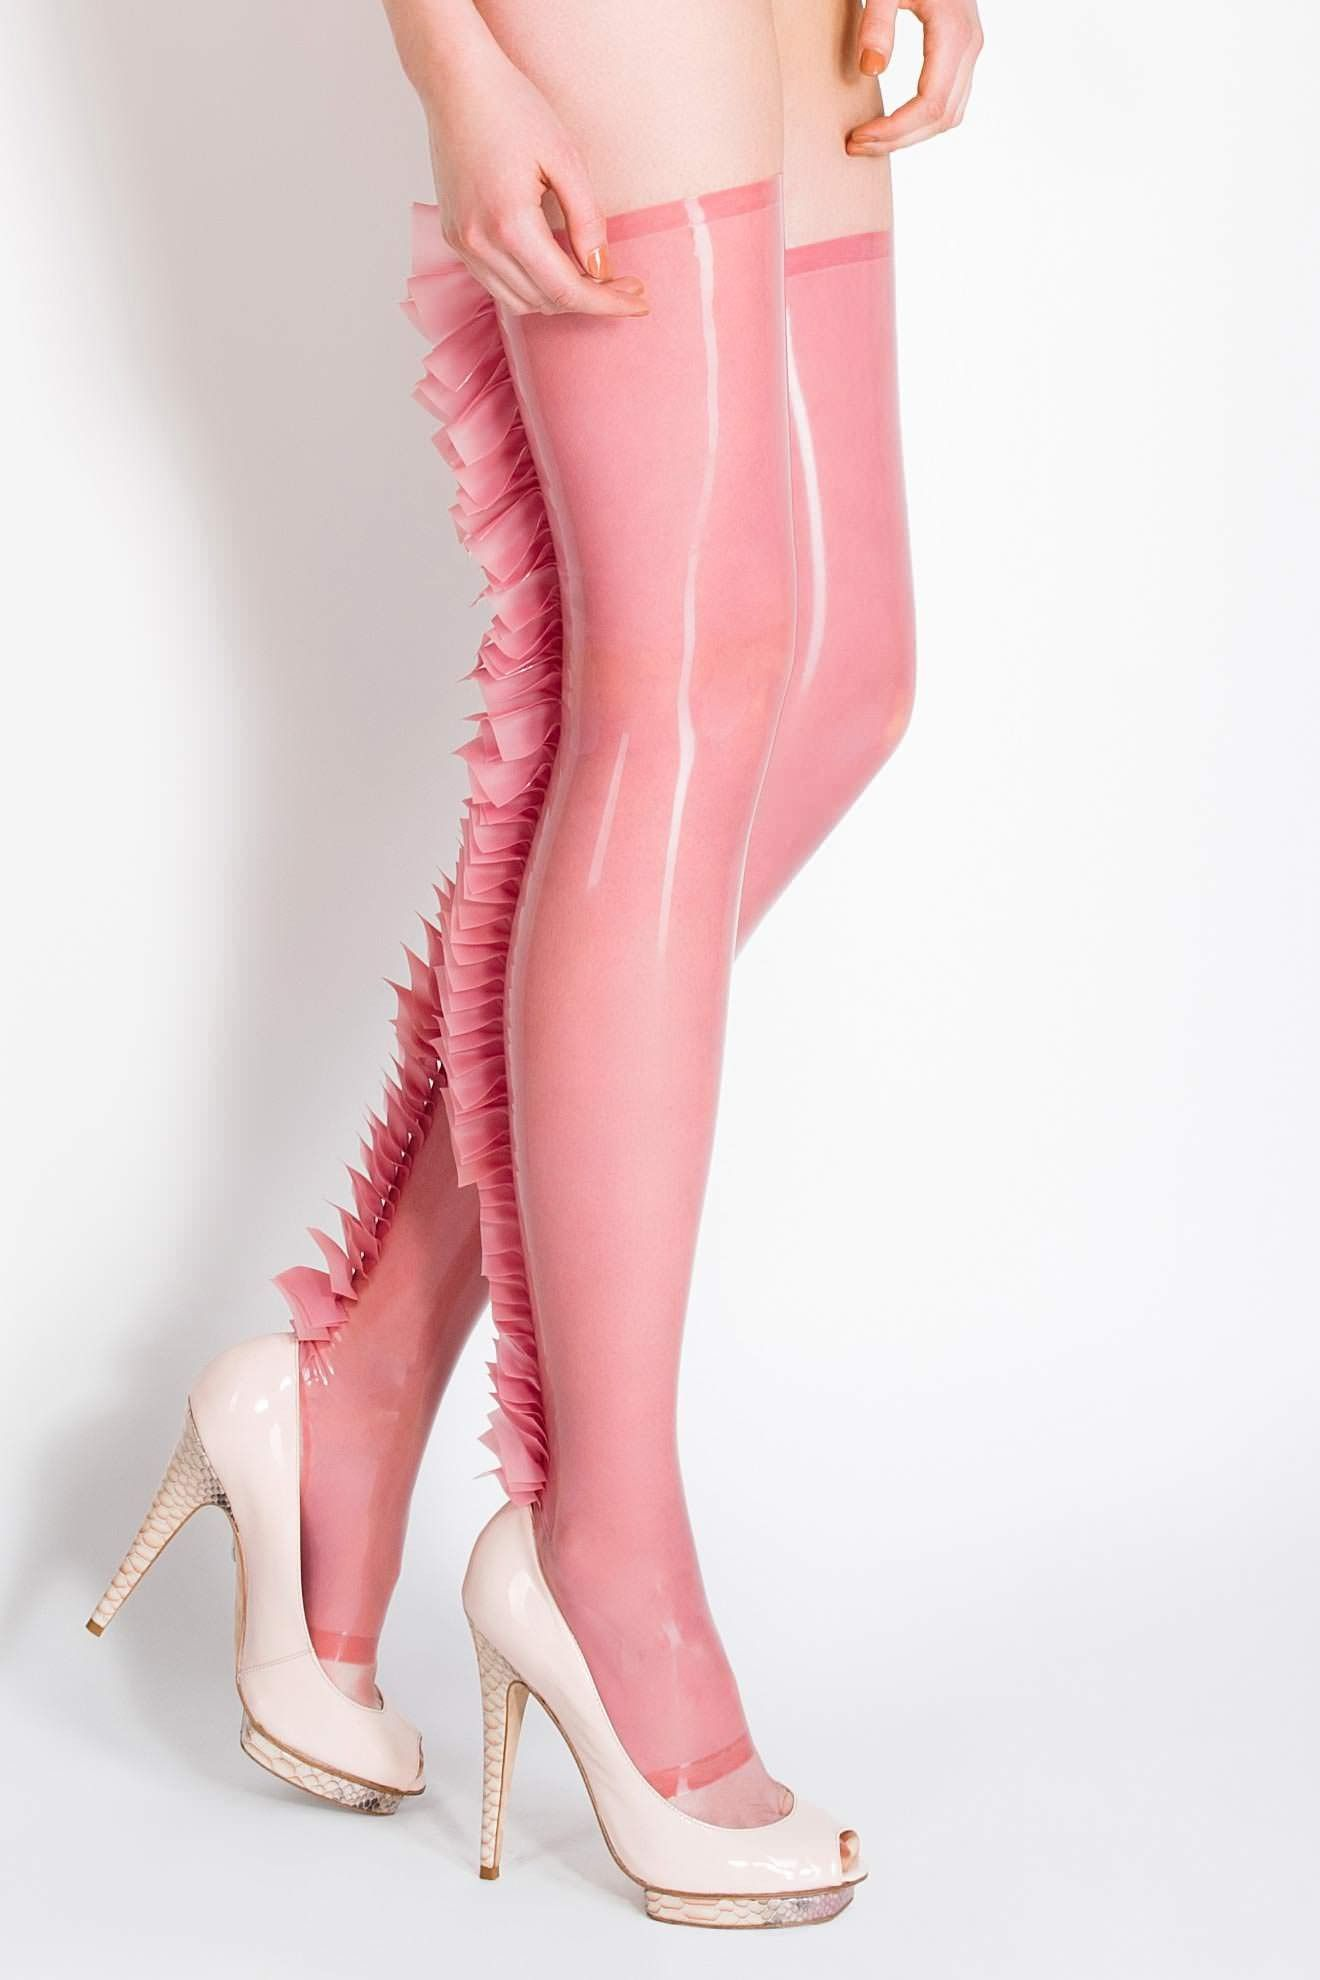 41fd1e3aeef Tres Bonjour Pegasus Legs leggings My girls would wear these for sure!! Lol